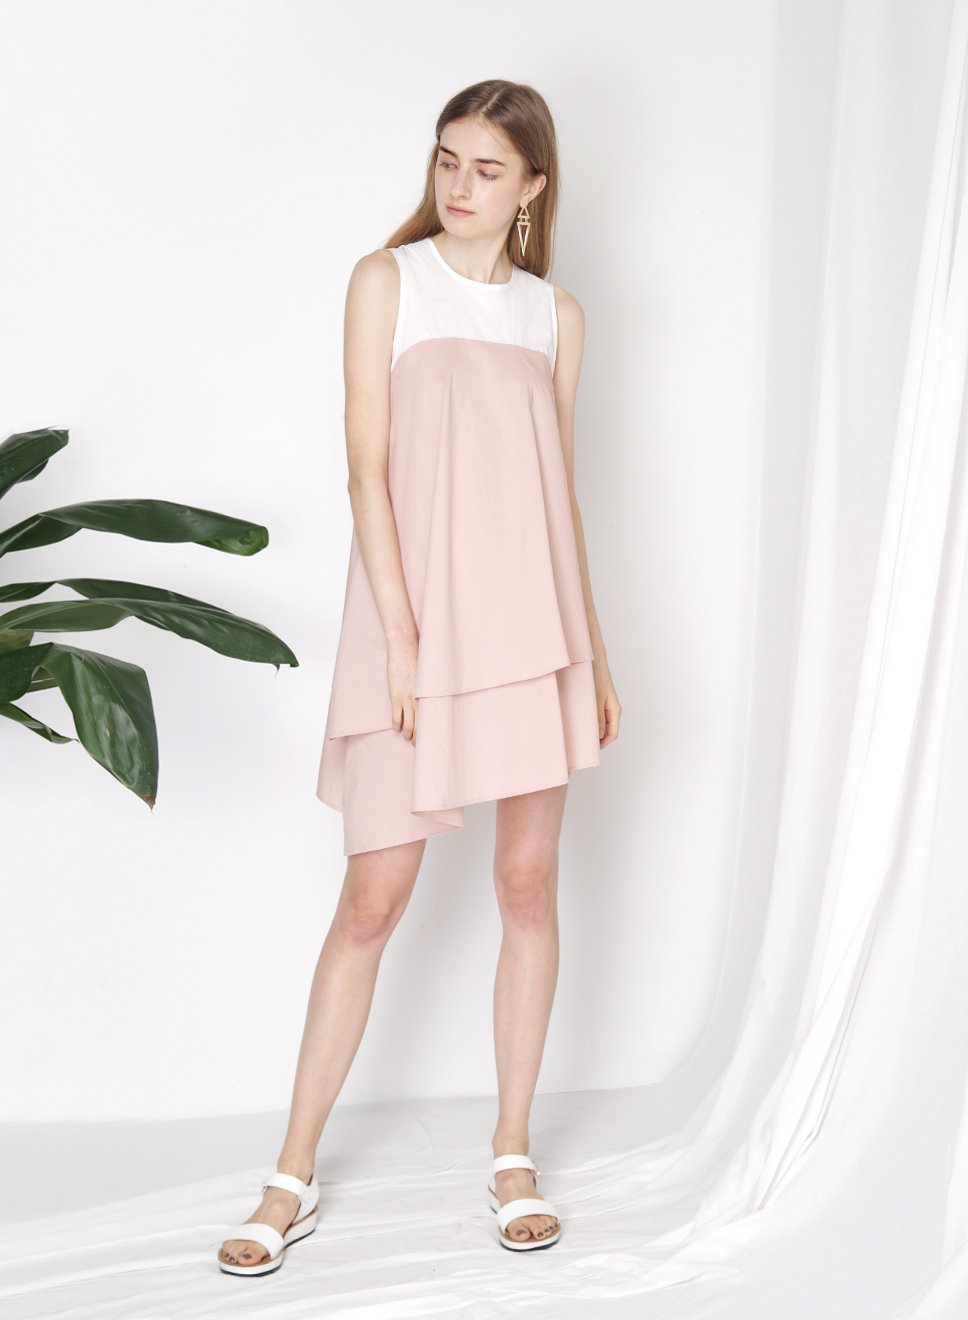 OBLIVION Contrast Asymmetric Dress (Blush) at $24.00 only sold at And Well Dressed Online Fashion Store Singapore